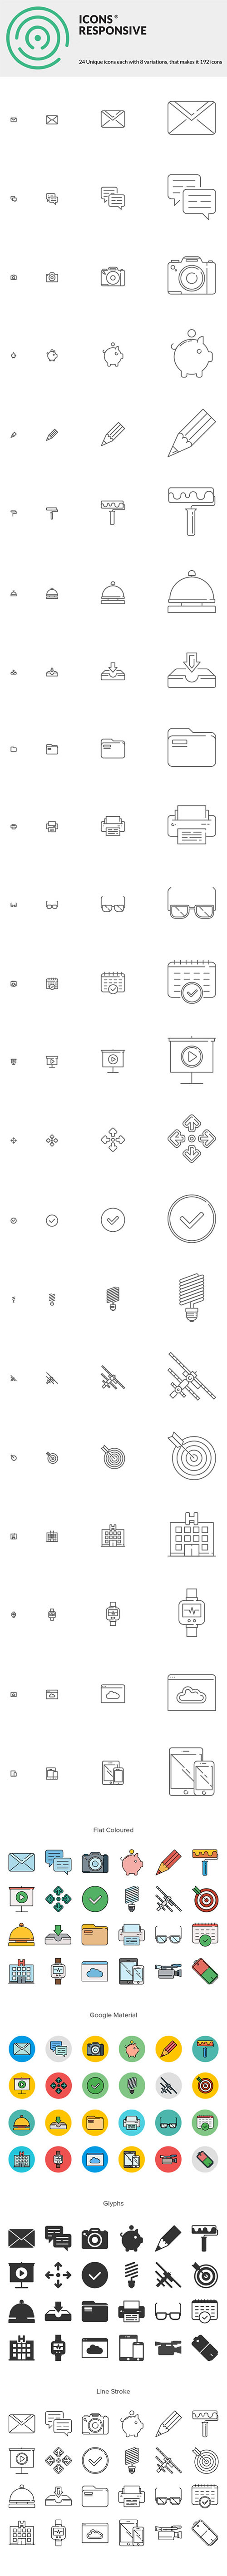 AI, PSD, SVG, PNG, SCETCH, CSH Vector Web Icons - IconsResponsive